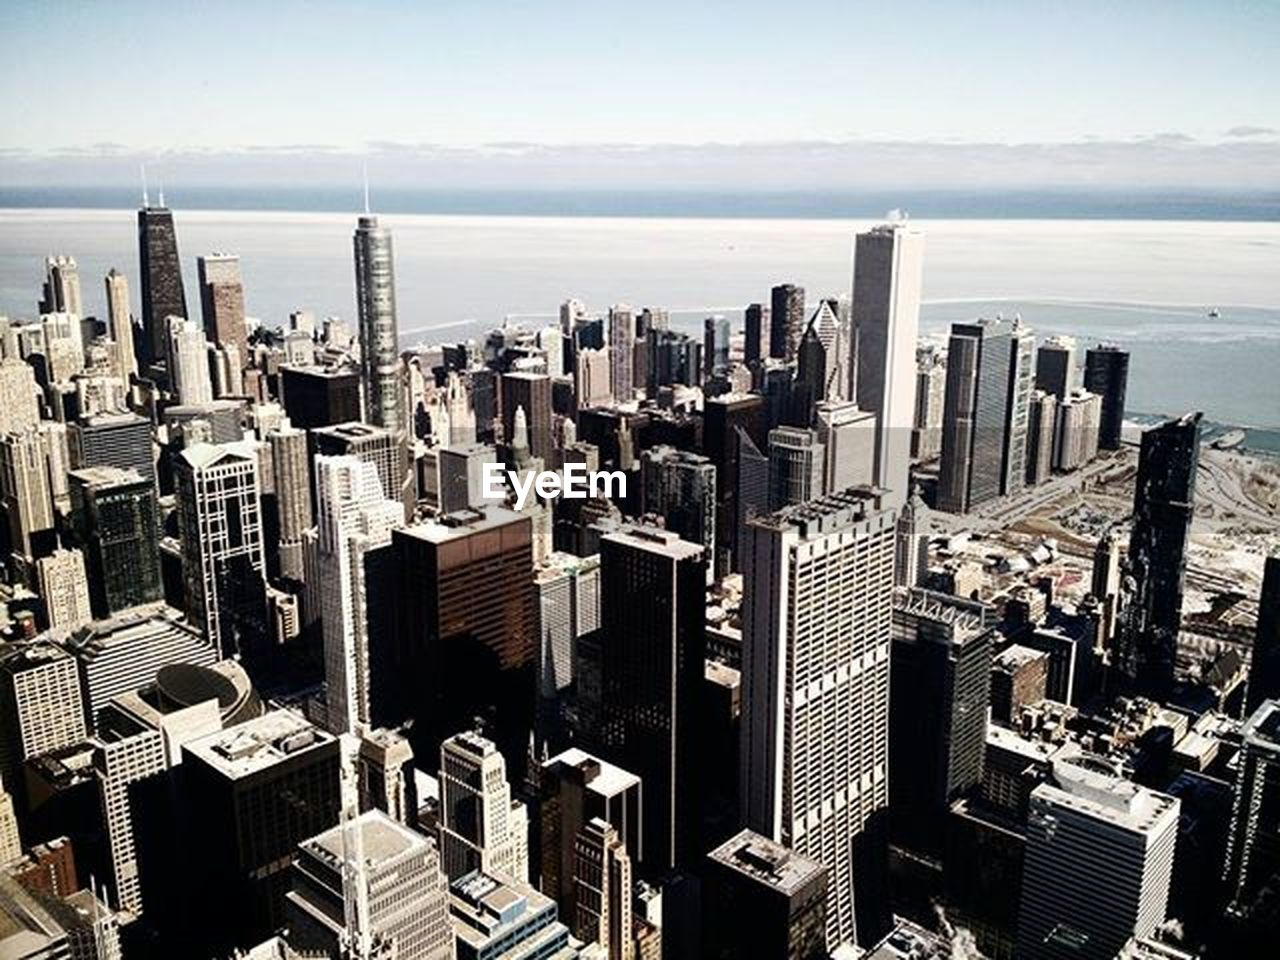 skyscraper, cityscape, architecture, urban skyline, city, building exterior, tower, travel destinations, high angle view, crowded, downtown district, city life, built structure, modern, day, growth, sky, outdoors, people